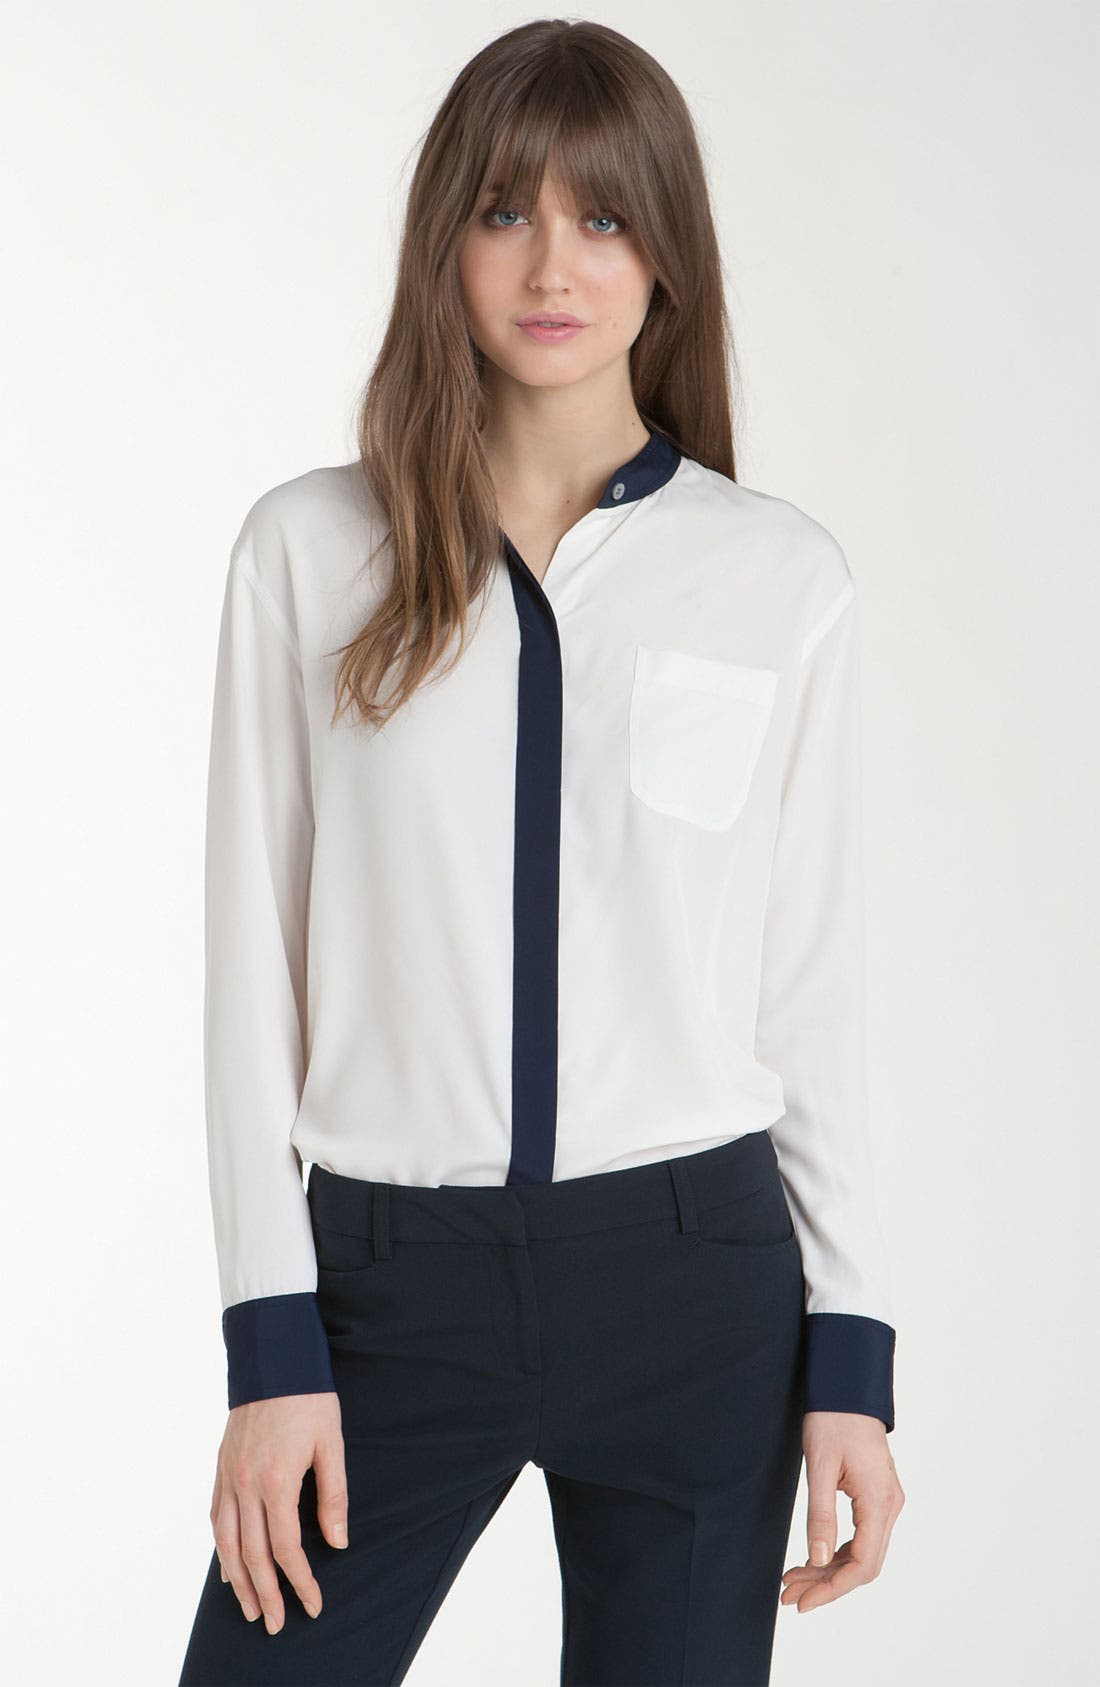 Main Image - Vince Camuto Stand Collar Shirt with Contrast Trim (Petite)